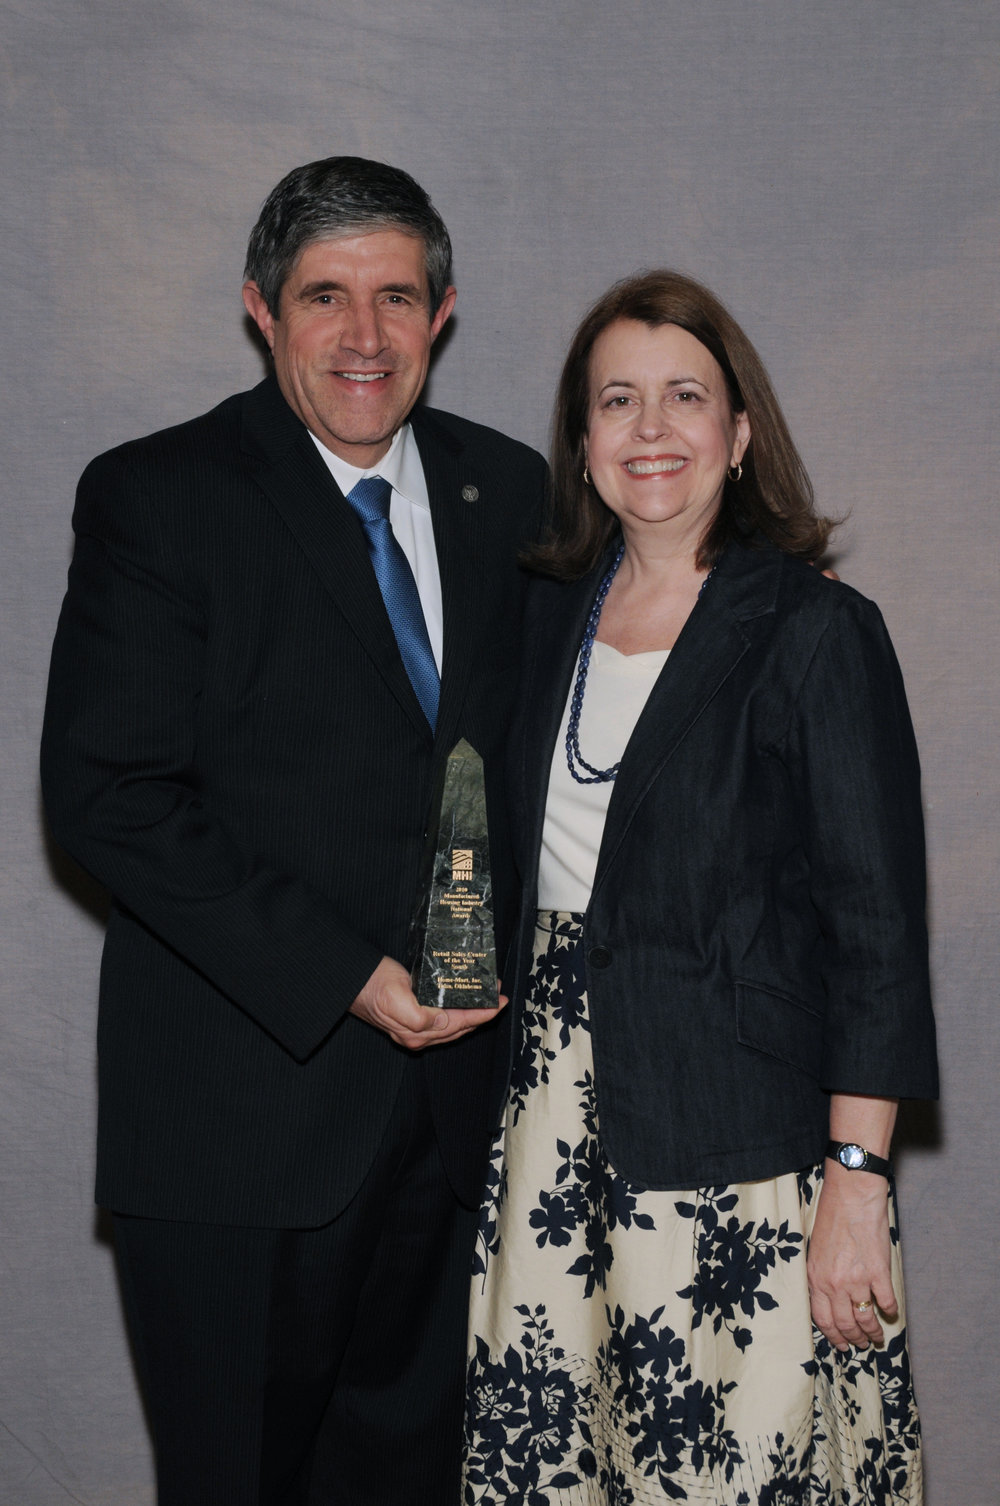 The Gormans with one of their many national awards from the Manufactured Housing Institute